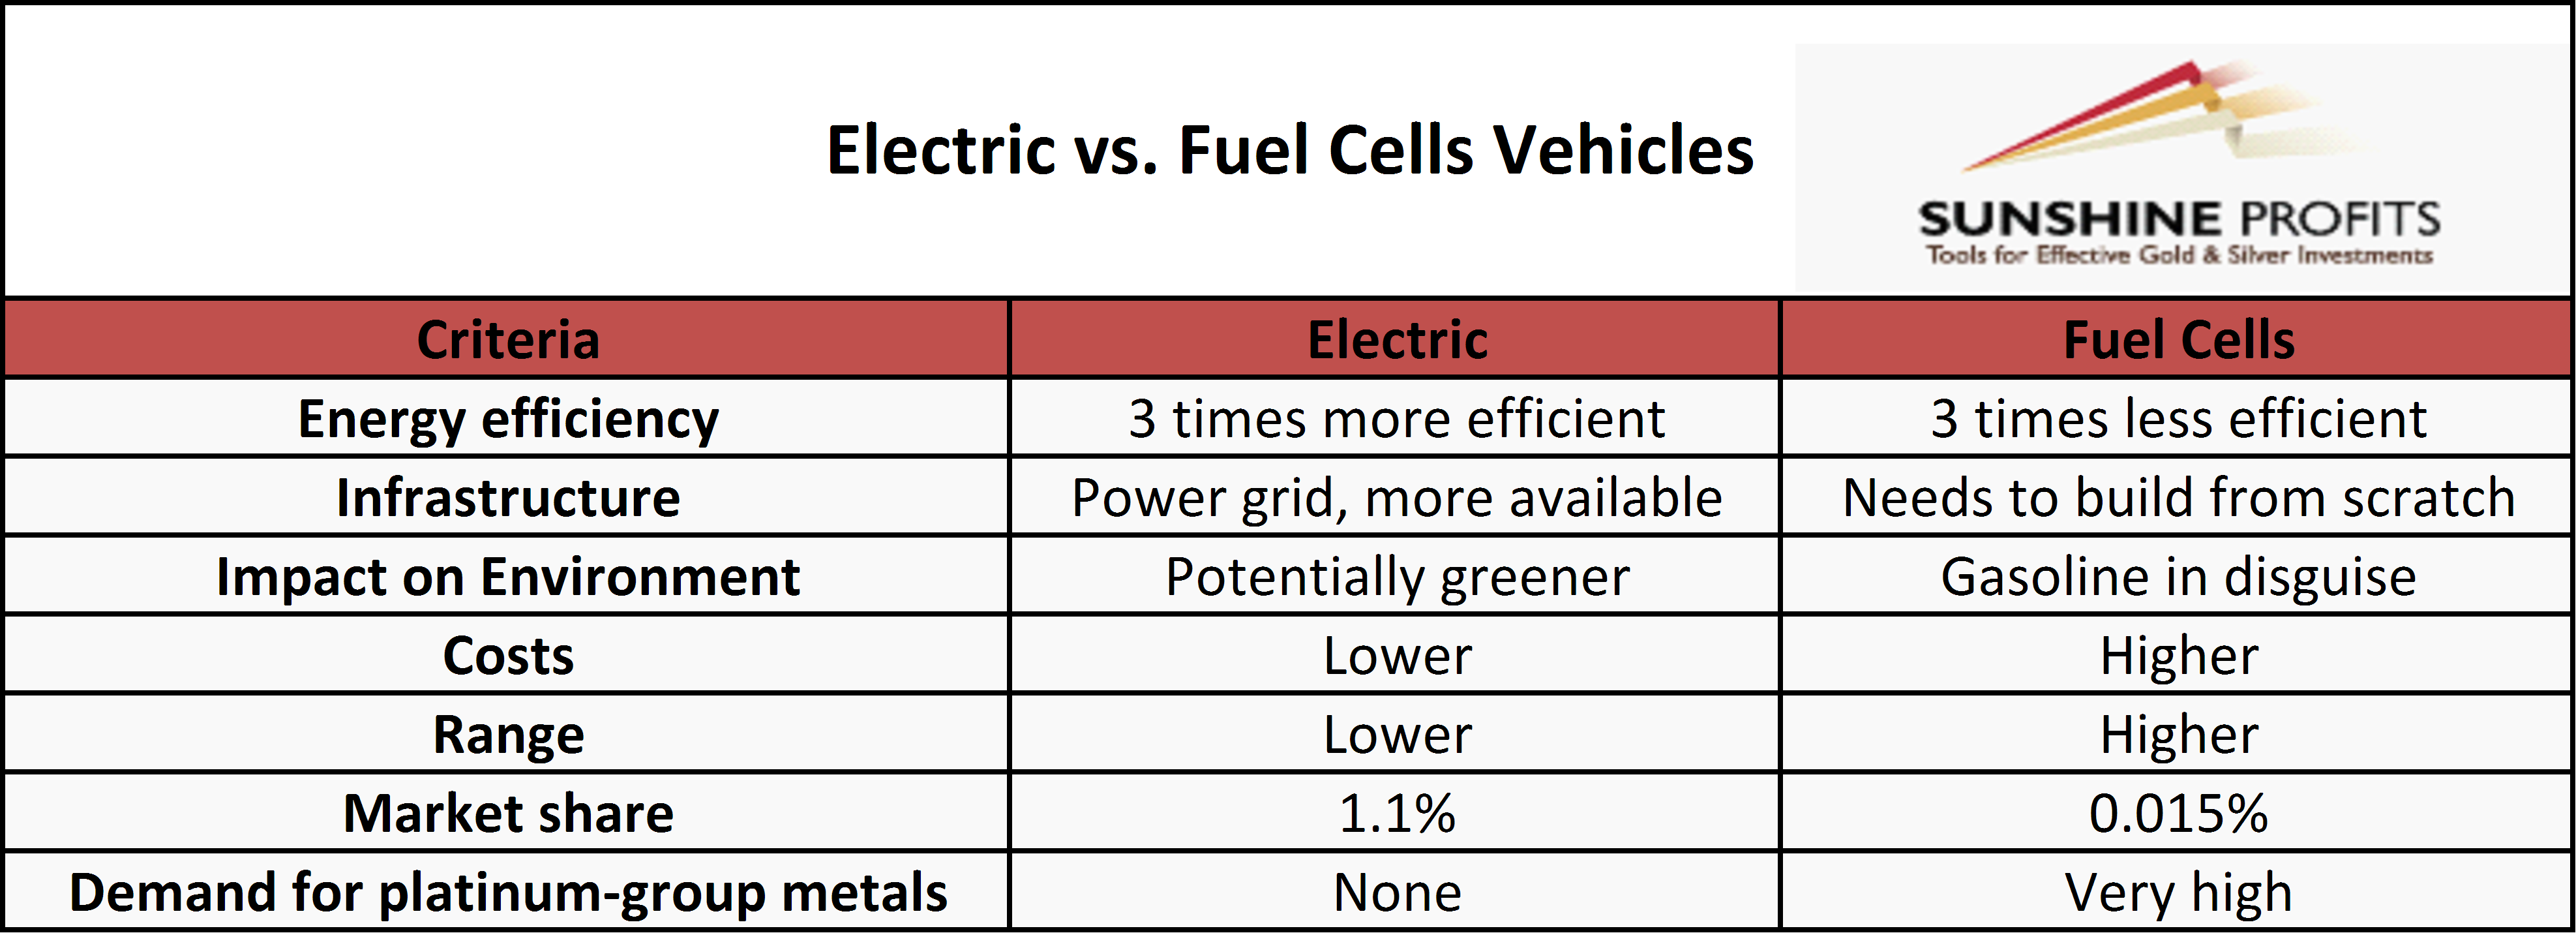 Electric Vs. Fuel Cell Vehicles